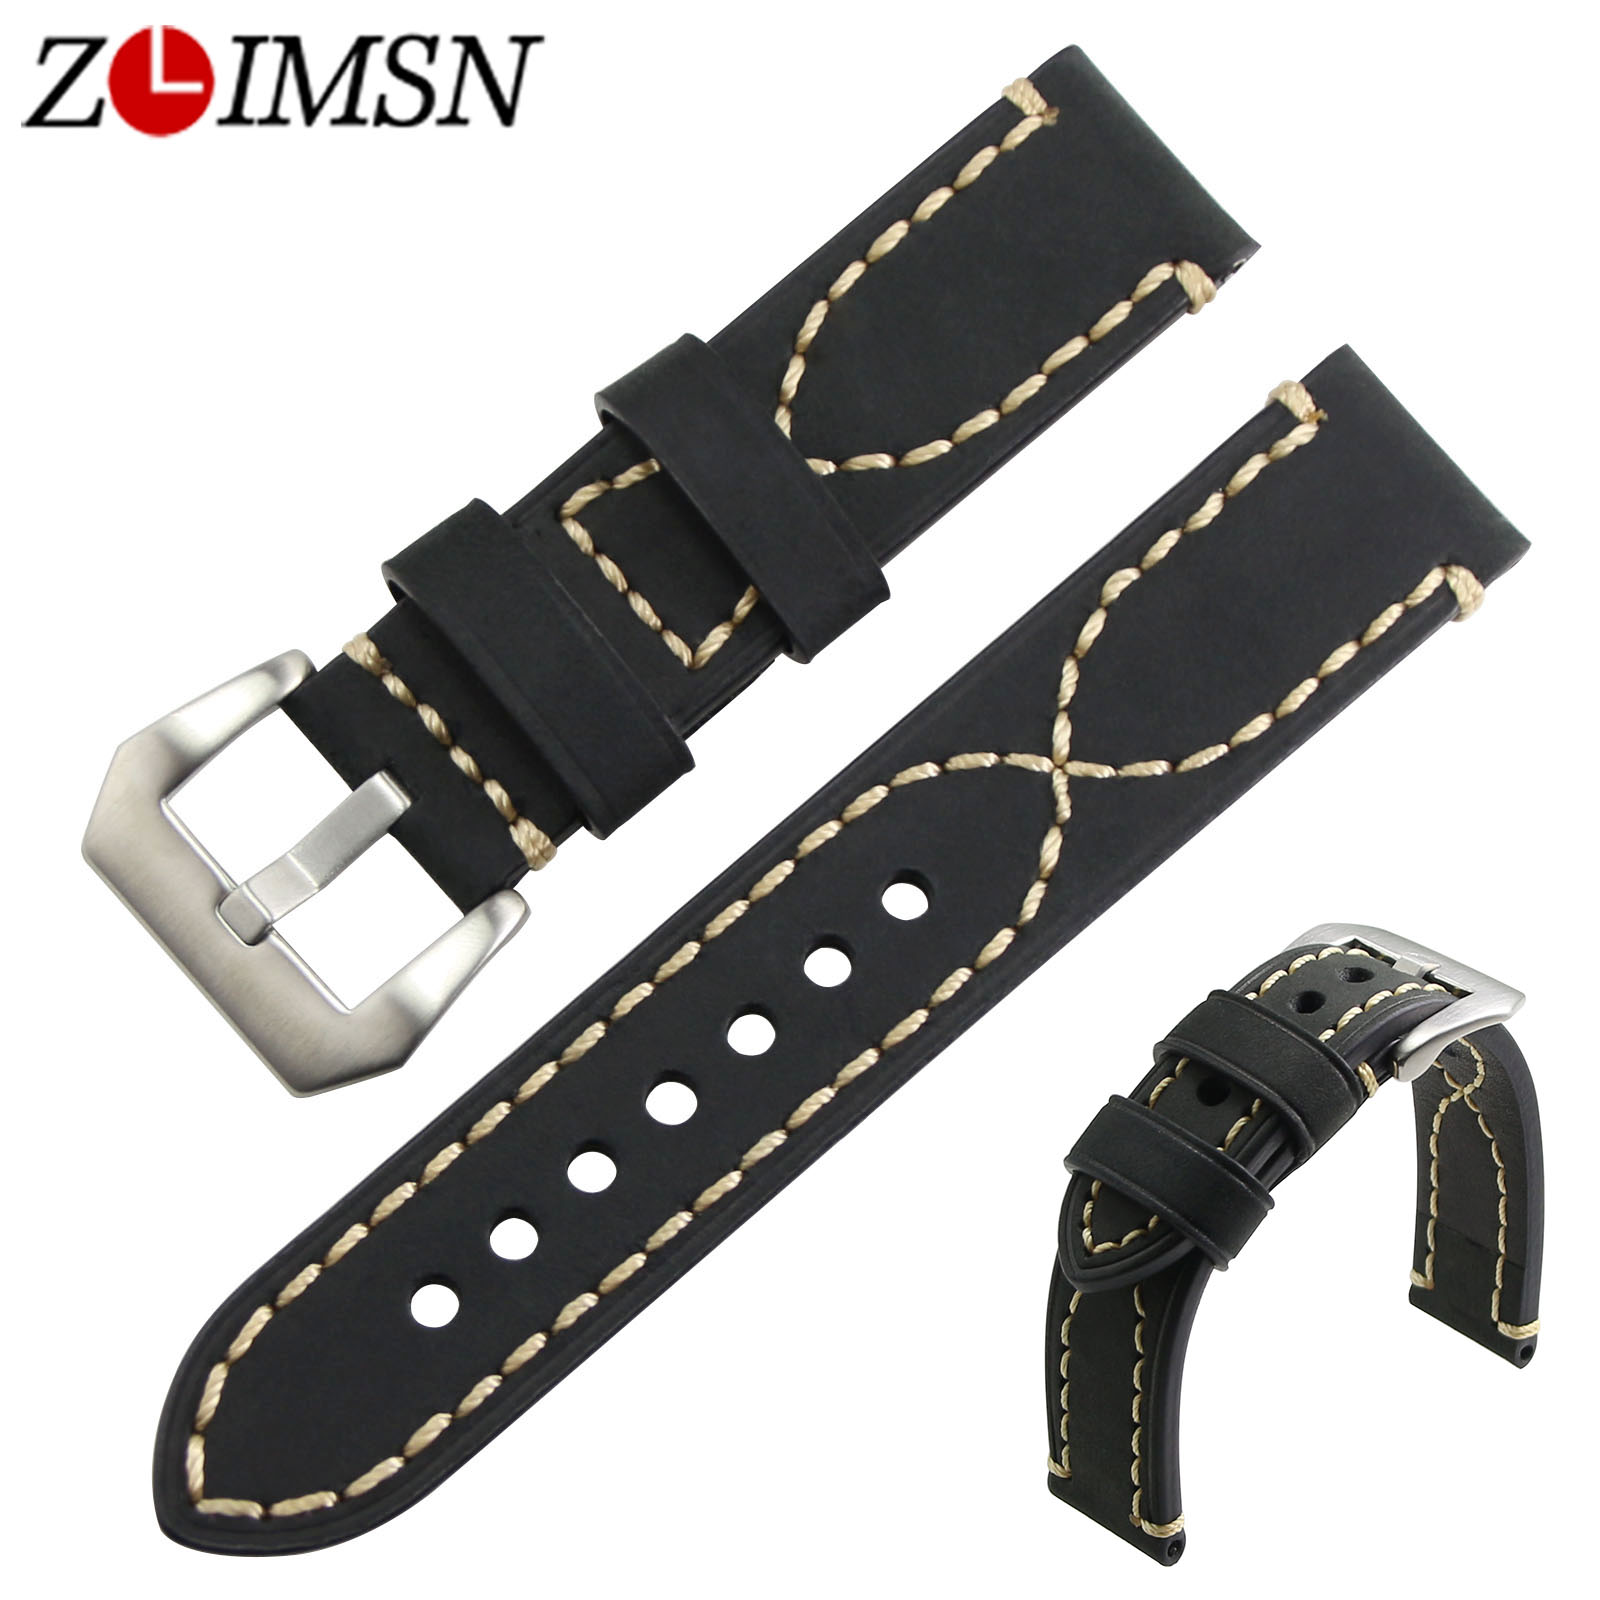 ZLIMSN Genuine Leather Watchbands Black Brown Yellow Thick Watch Band Strap Belt Stainless Steel Buckle Brushed 20 22 24 26mm zlimsn high quality thick genuine leather watchbands 20 22 24 26mm brown watch strap 316l brushed silver stainless steel buckle